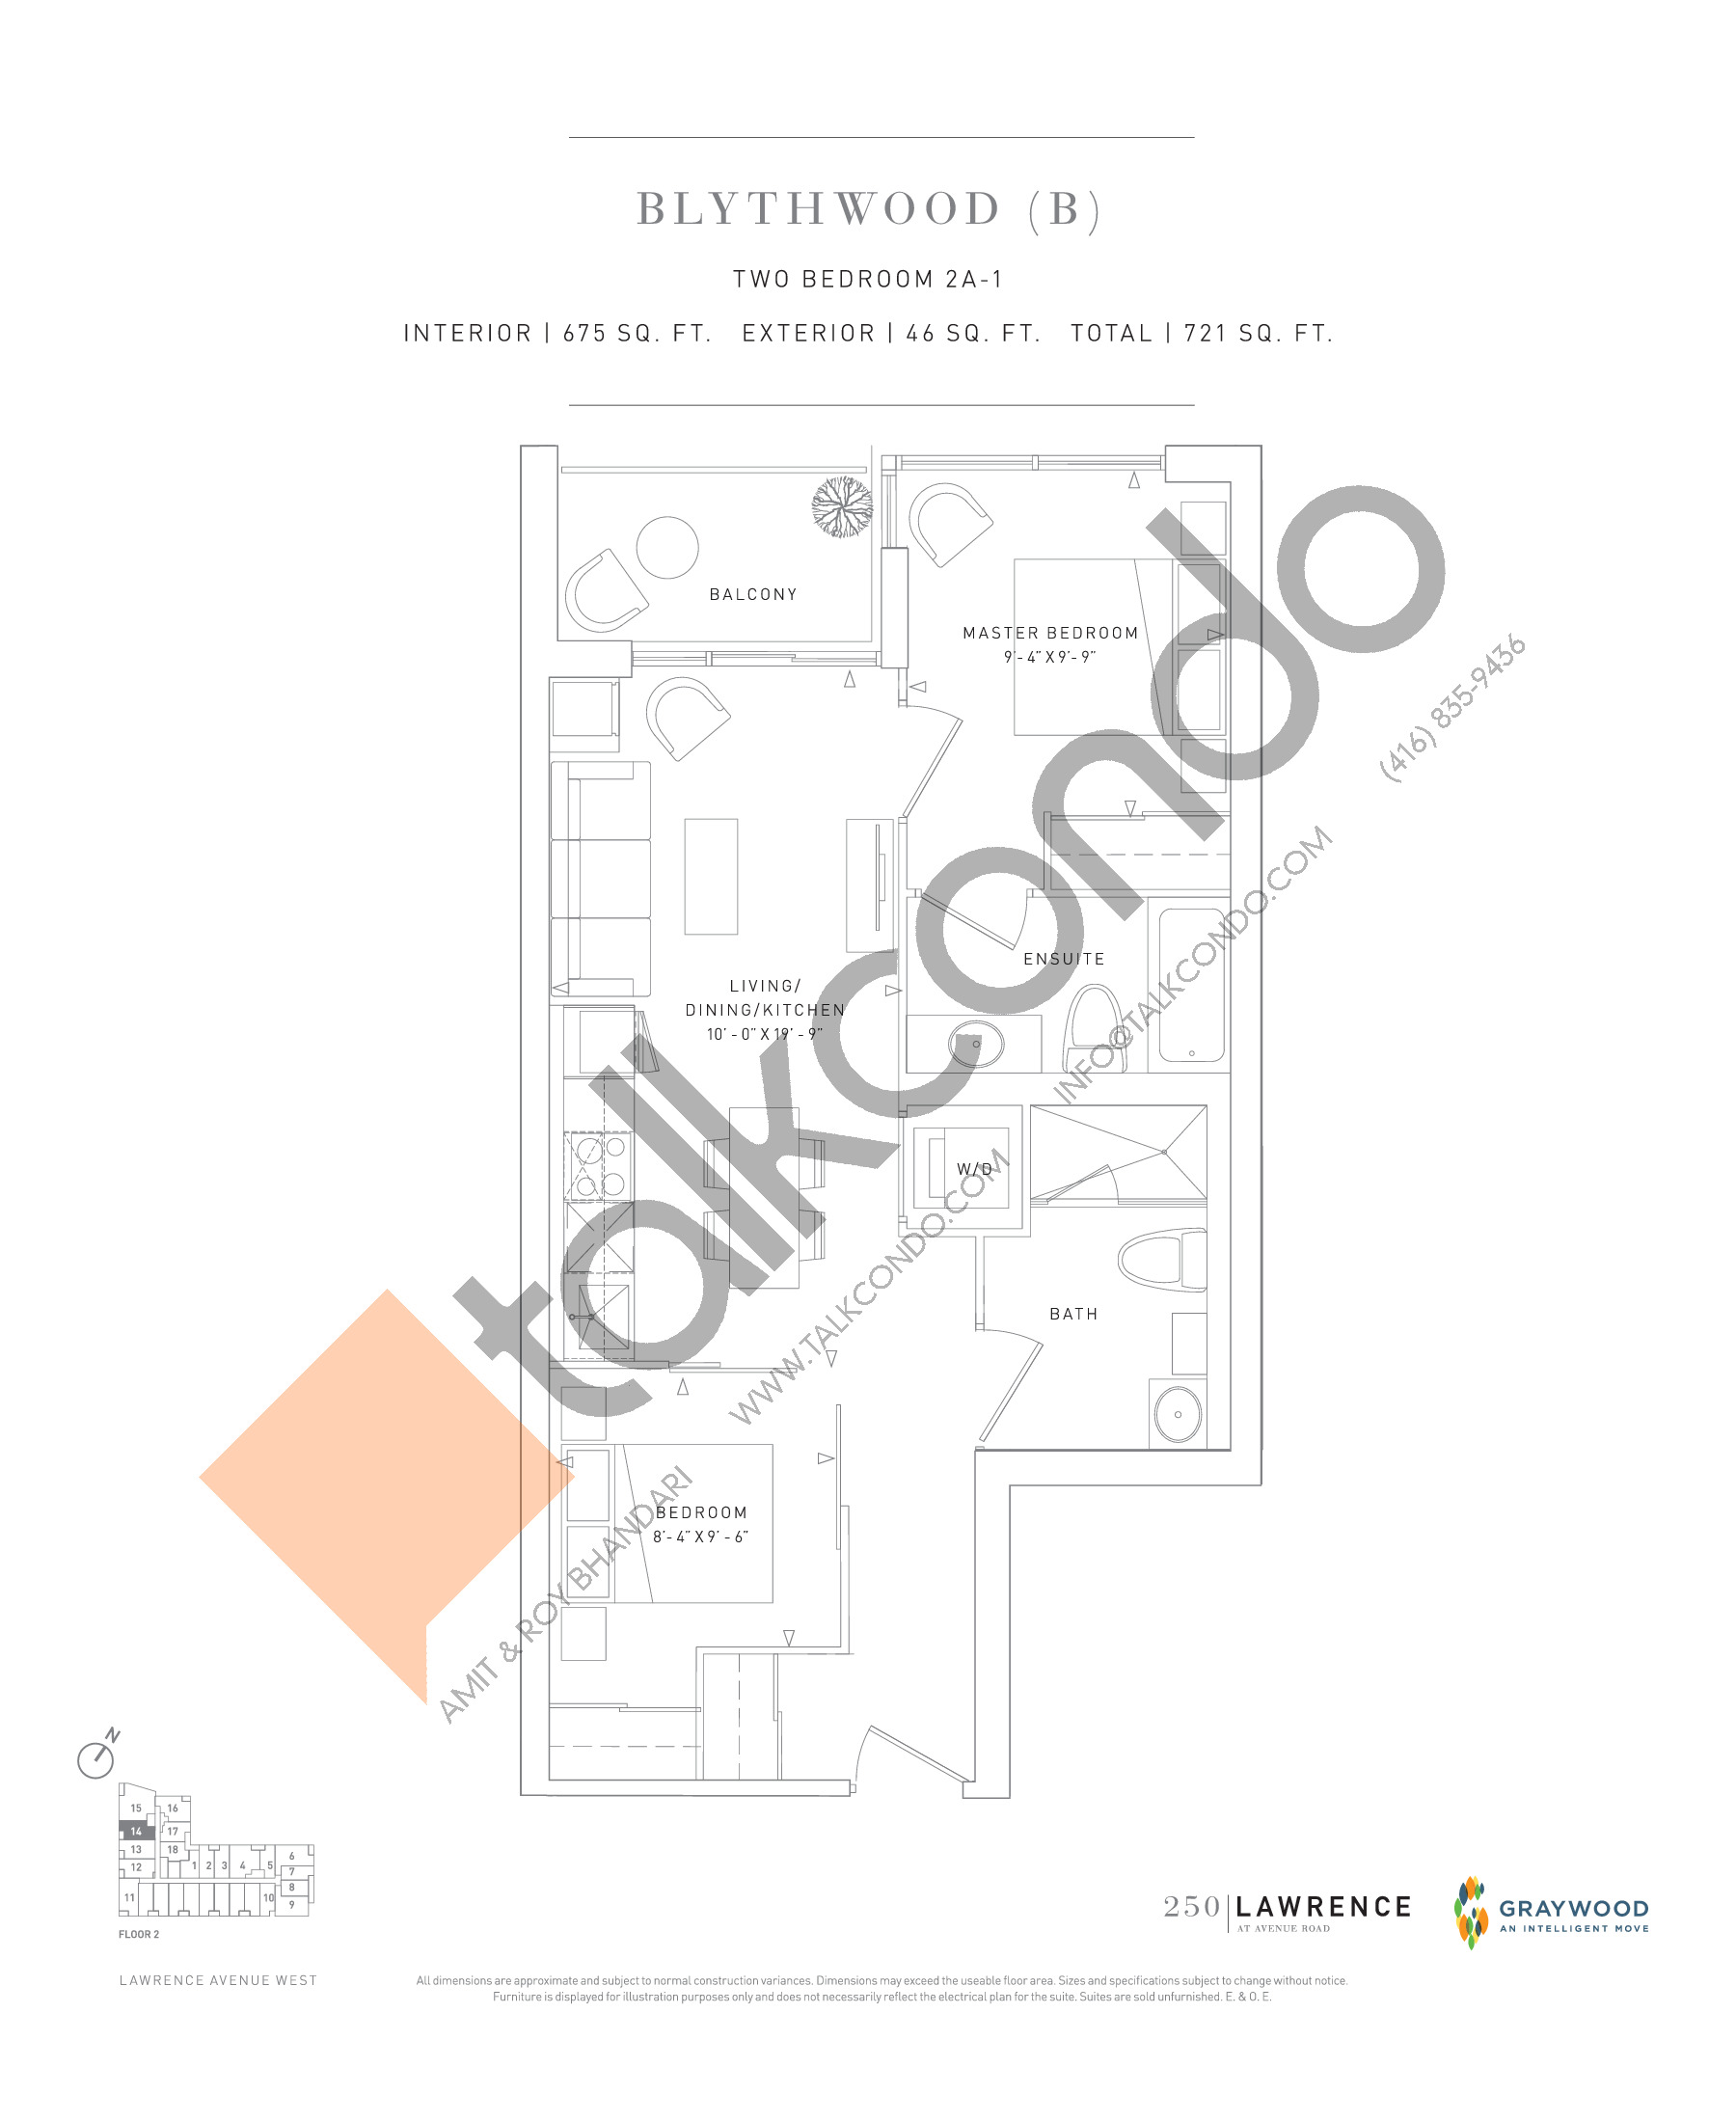 Blythwood (B) Floor Plan at 250 Lawrence Avenue West Condos - 675 sq.ft